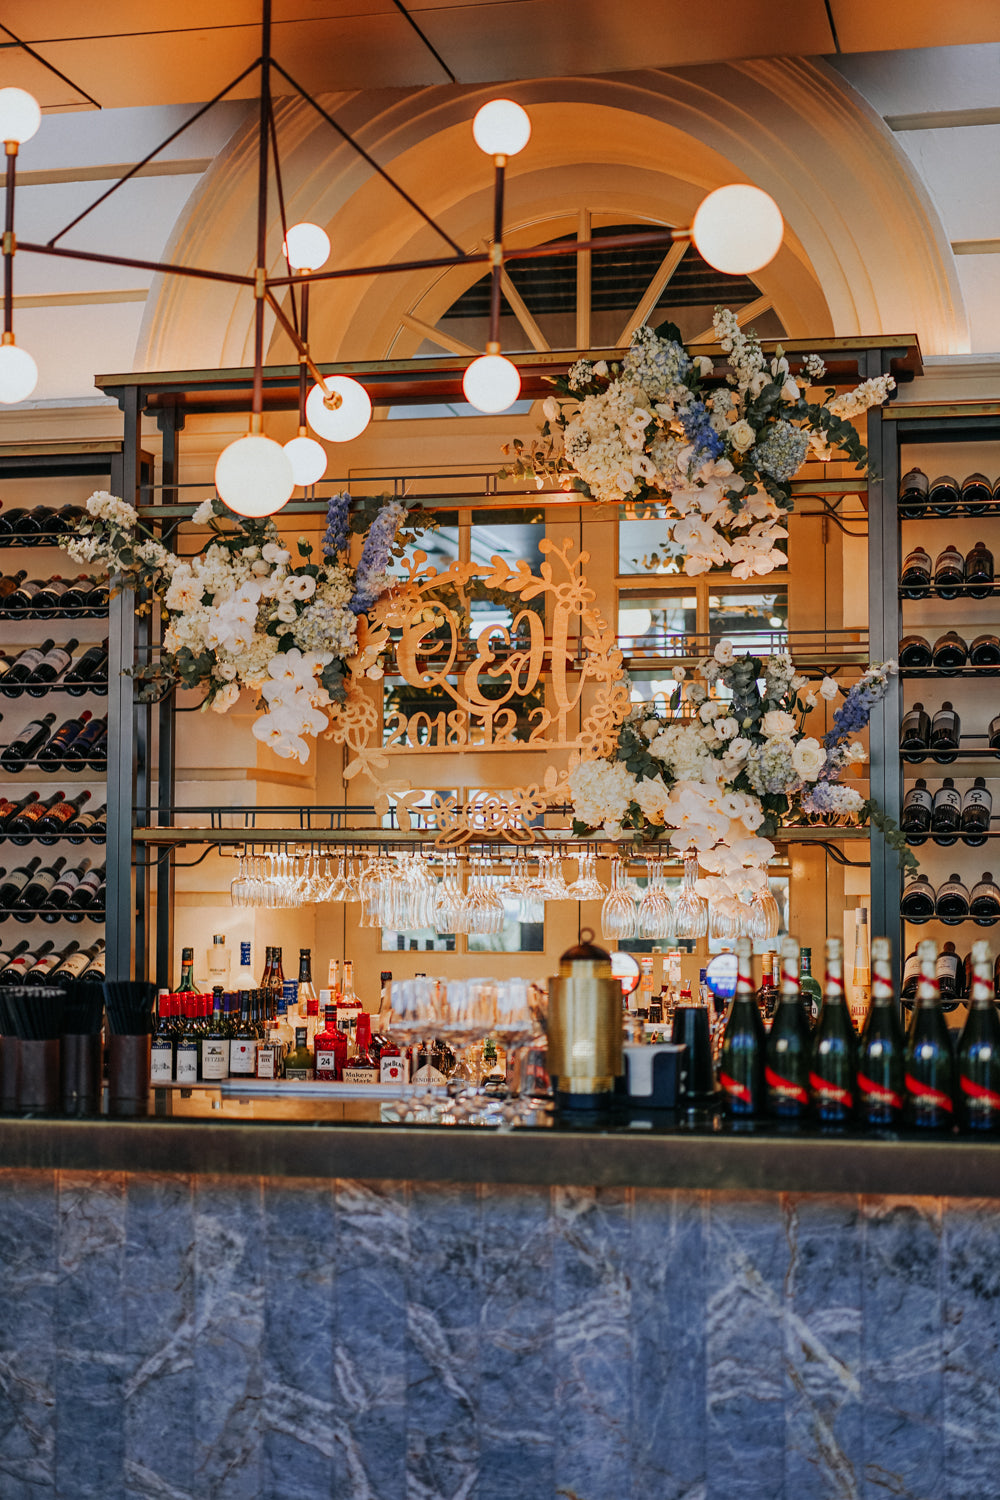 Warmly lit marble bar counter decorated with white orchids, blue hydrangeas, eucalyptus next to wine bottles and glasses at ACM Empress restaurant